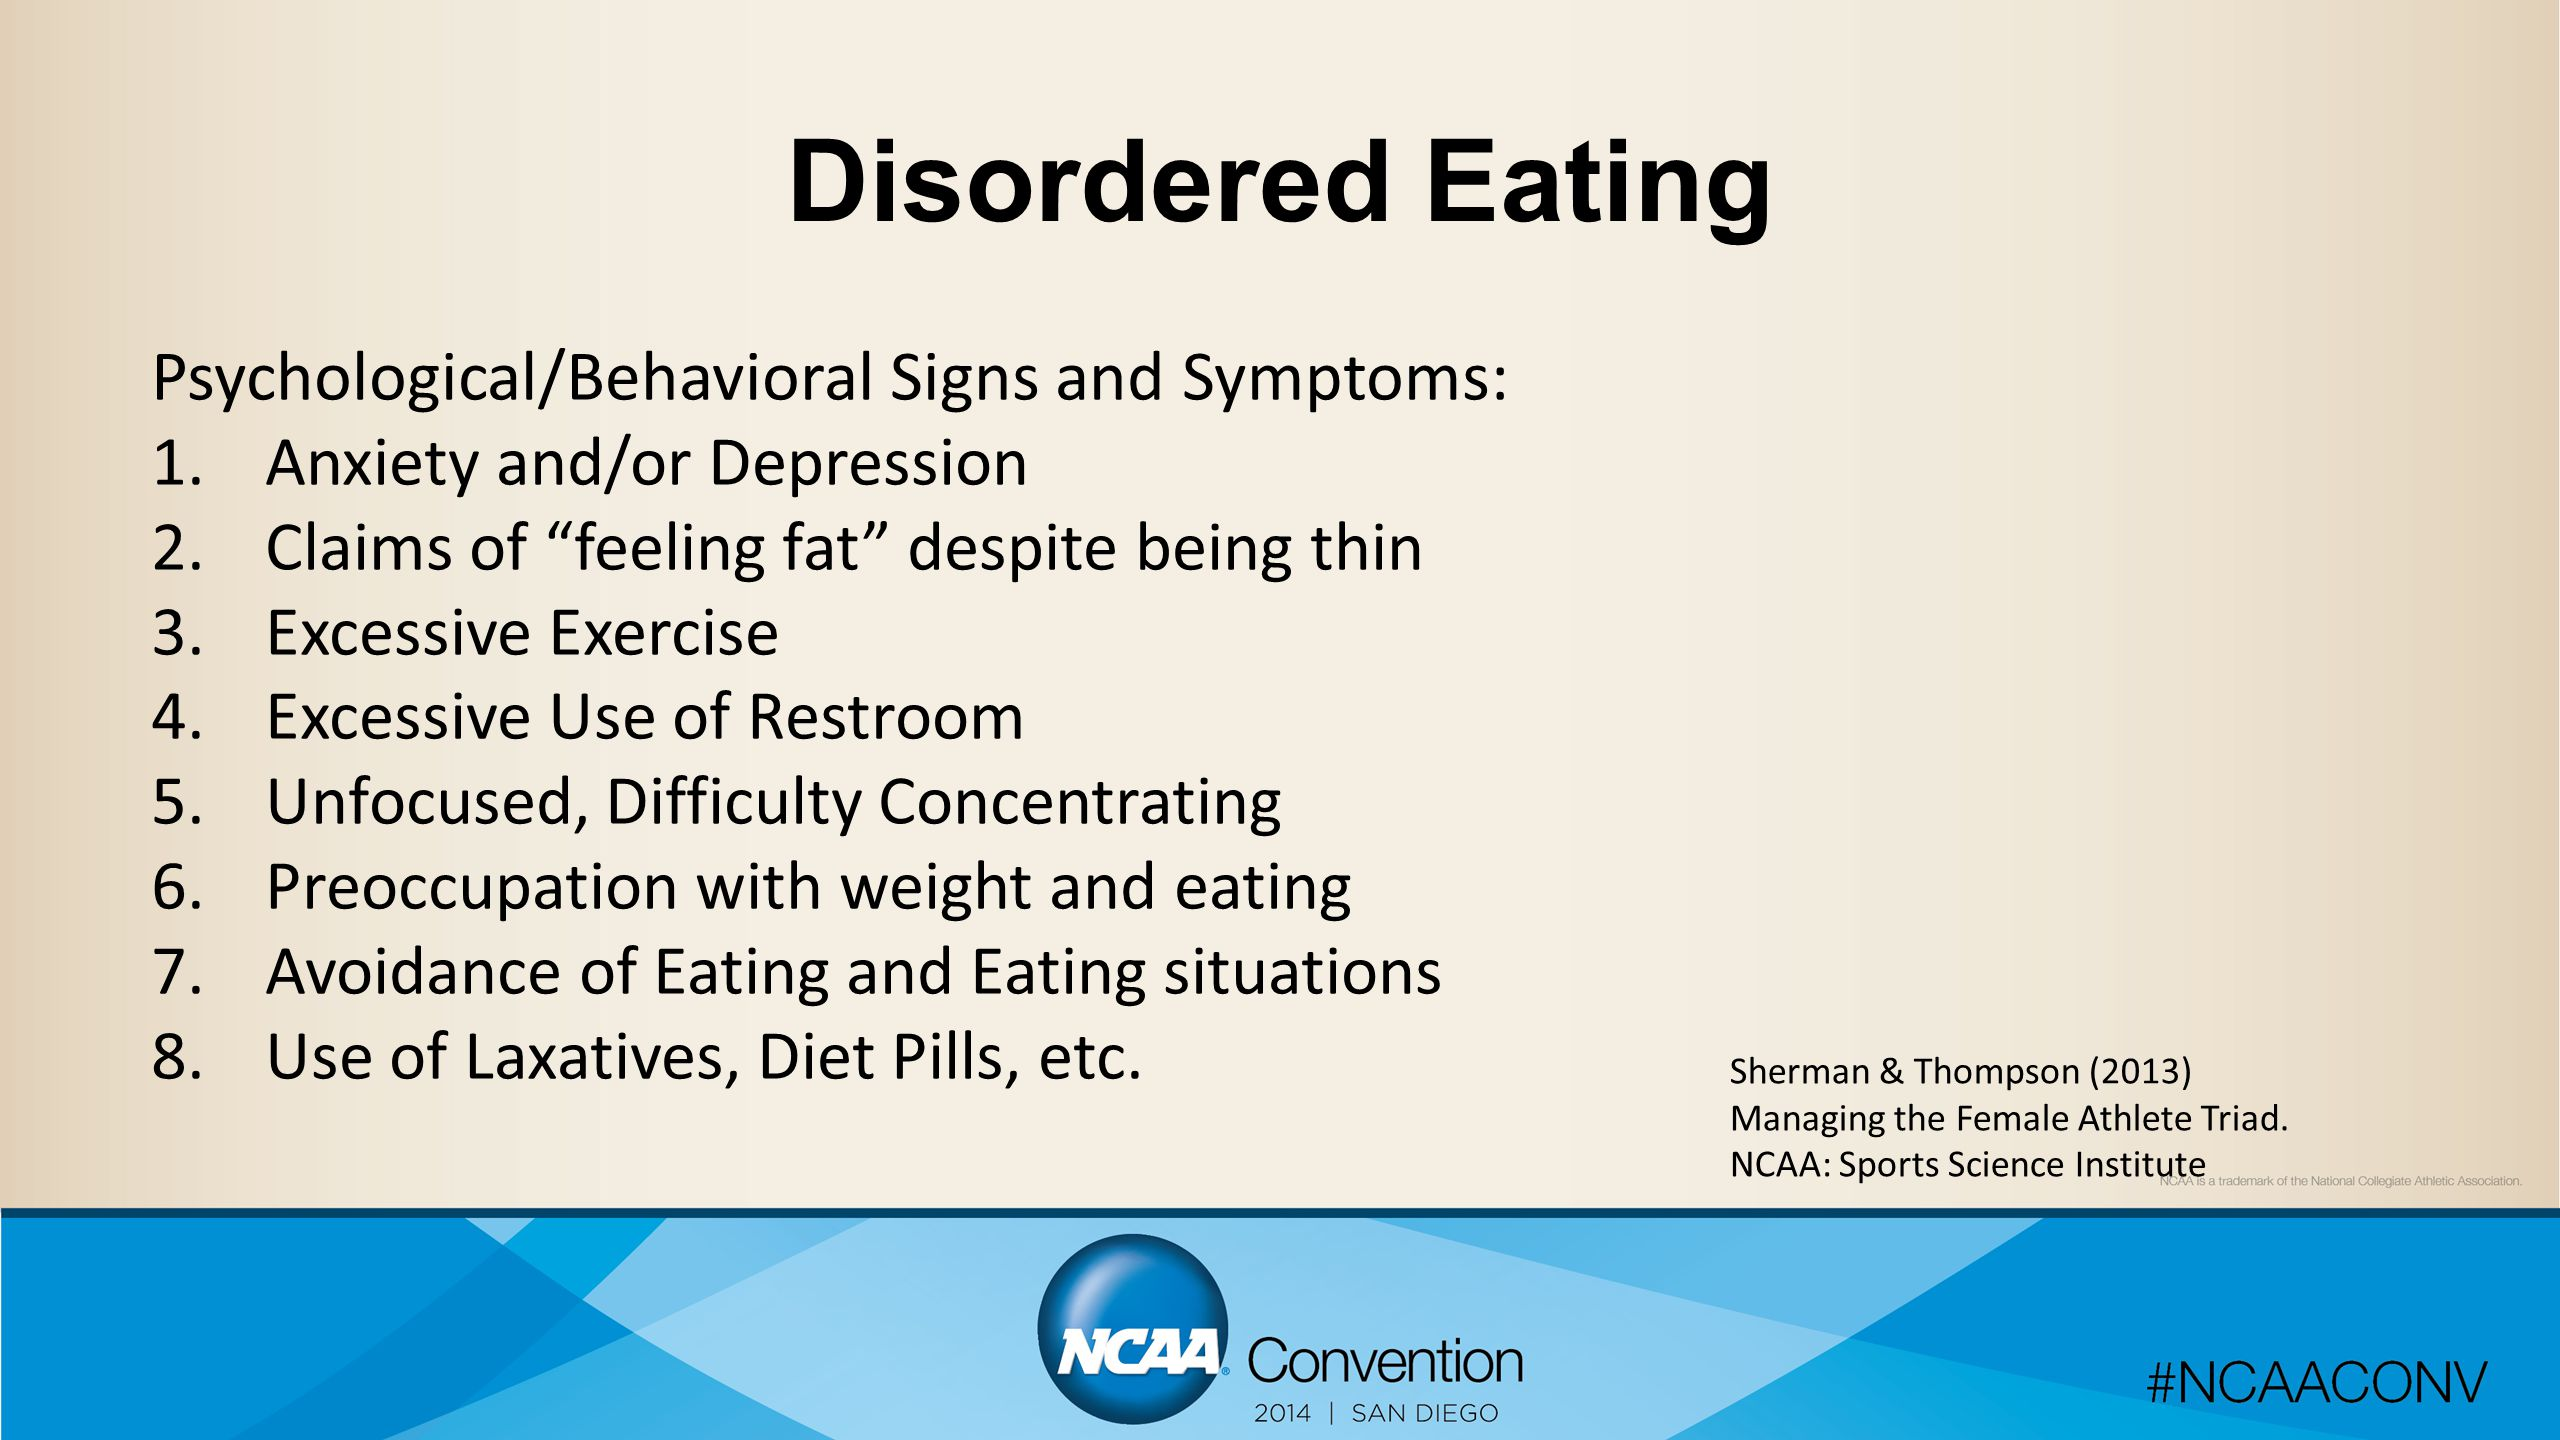 Disordered Eating Psychological/Behavioral Signs and Symptoms: 1.Anxiety and/or Depression 2.Claims of feeling fat despite being thin 3.Excessive Exercise 4.Excessive Use of Restroom 5.Unfocused, Difficulty Concentrating 6.Preoccupation with weight and eating 7.Avoidance of Eating and Eating situations 8.Use of Laxatives, Diet Pills, etc.